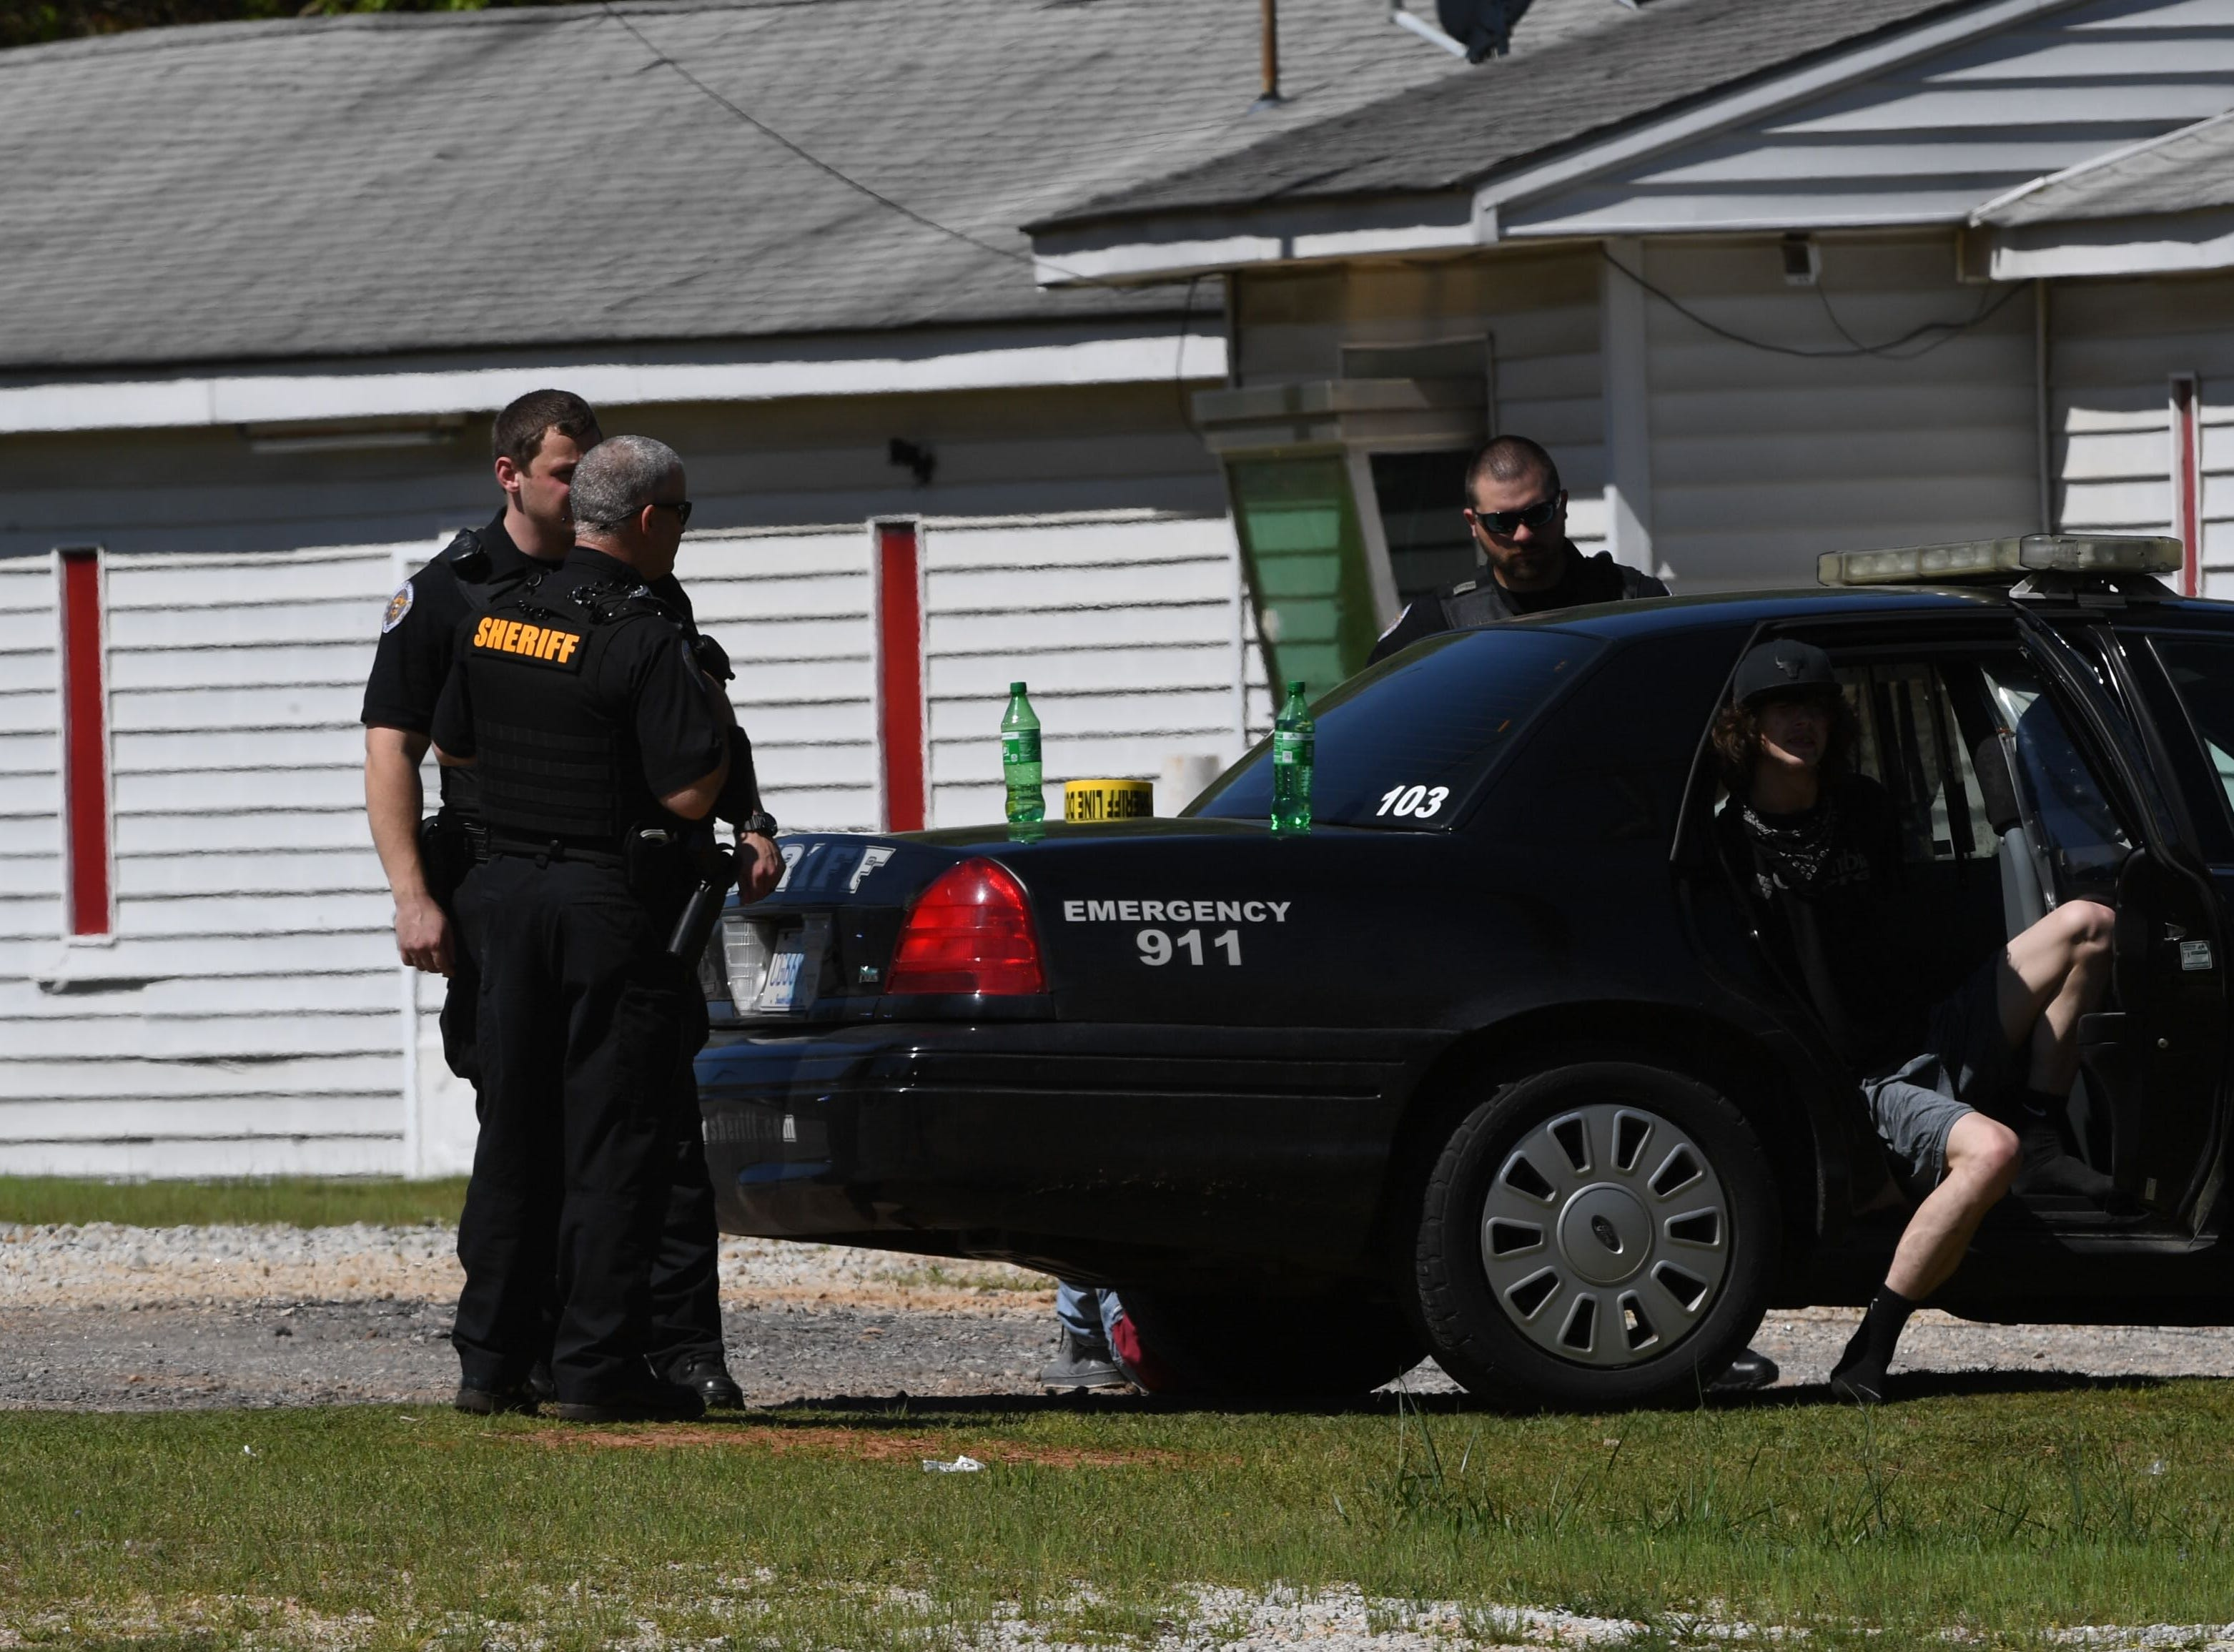 Anderson County Sheriff's Office deputies respond to a shooting at Hilltop Motel on Hwy 29 where one person was reported shot Wednesday, April 10, 2019.